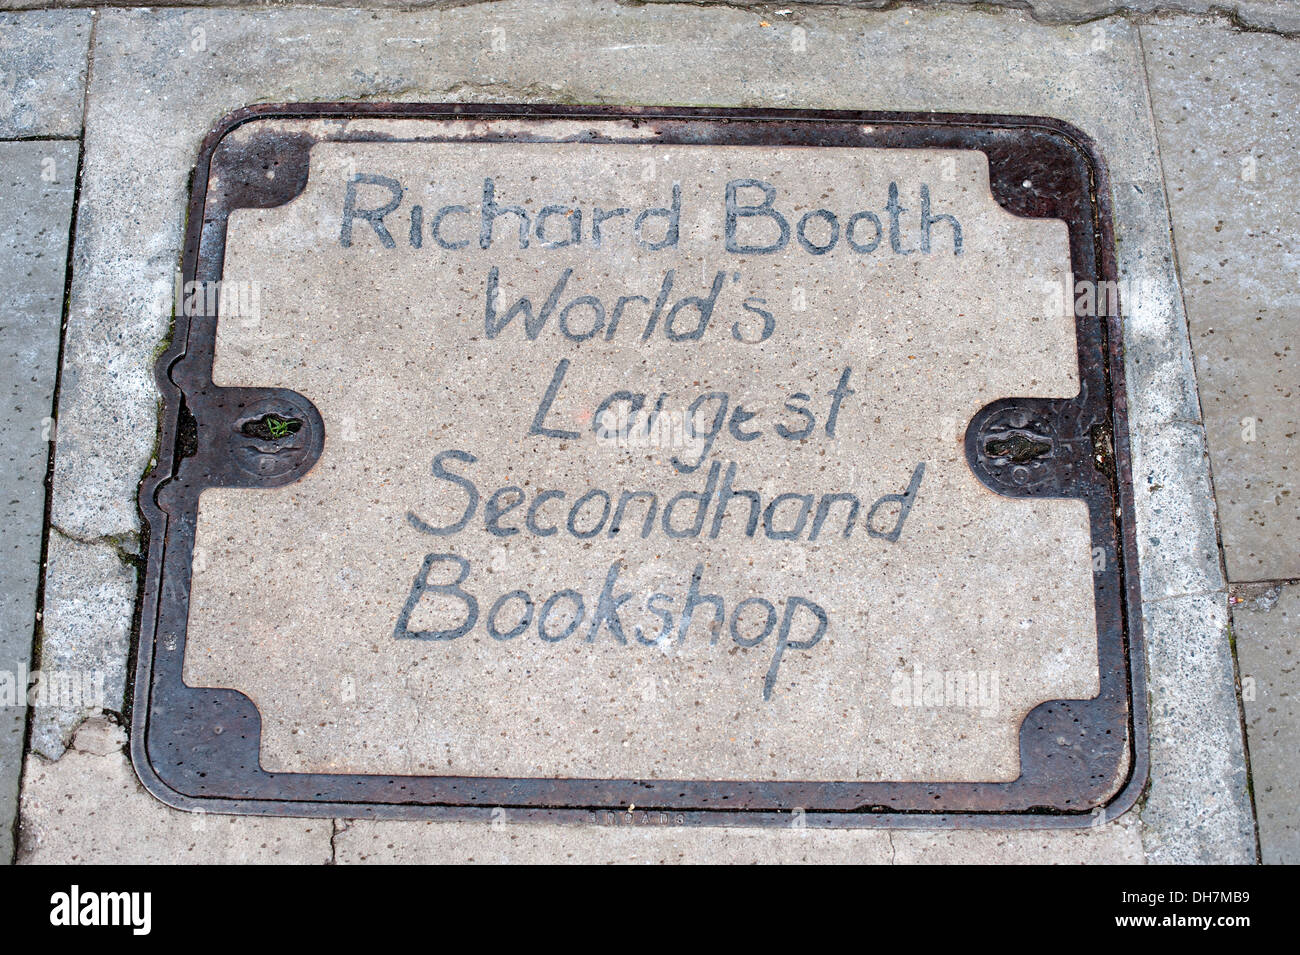 Richard Booth Worlds Largest Secondhand Bookshop Hay-On-Wye UK - Stock Image